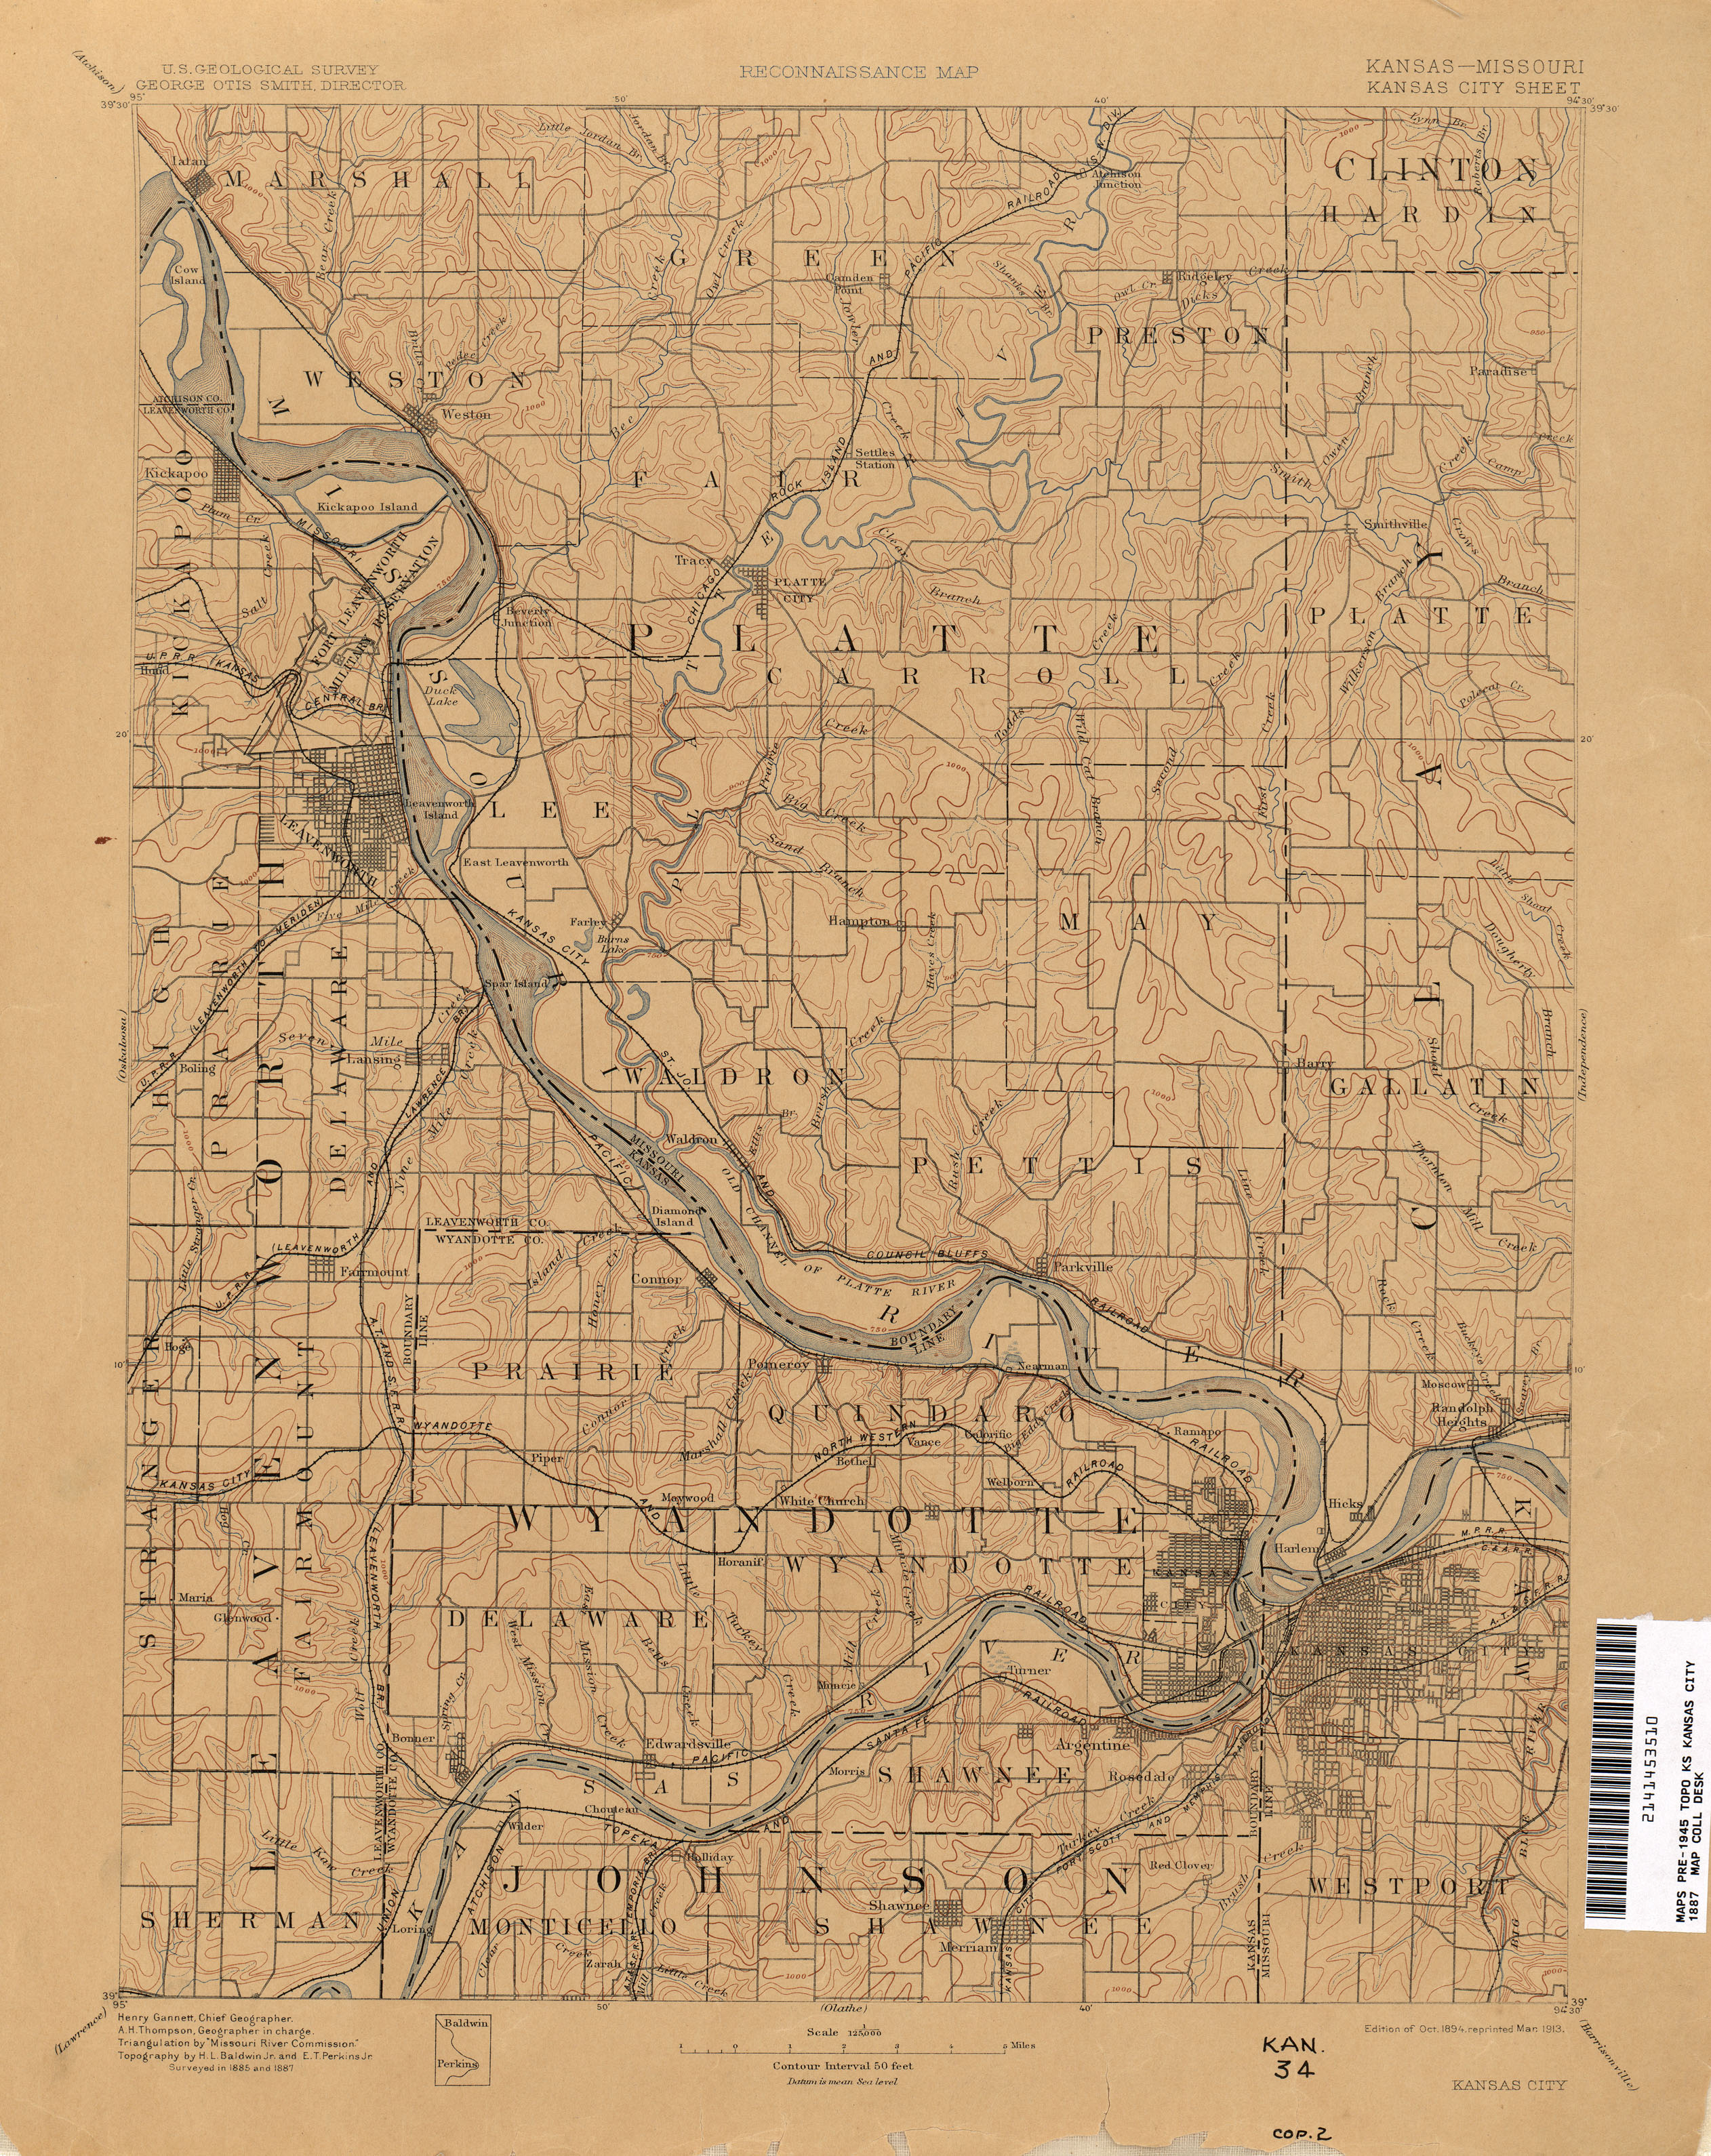 Old Kansas Map.Kansas Historical Topographic Maps Perry Castaneda Map Collection